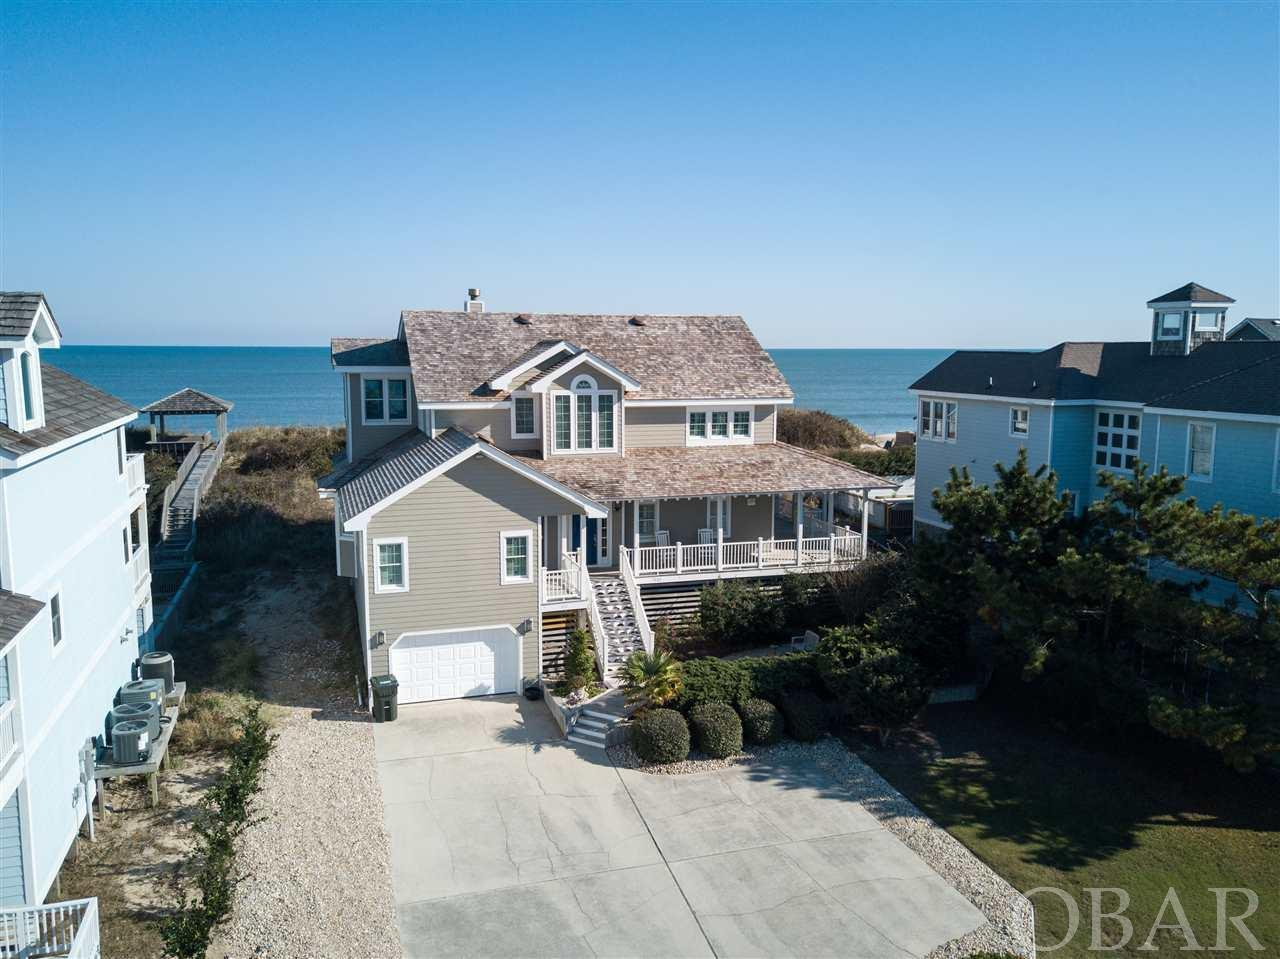 5111 Virginia Dare Trail,Nags Head,NC 27959,5 Bedrooms Bedrooms,4 BathroomsBathrooms,Residential,Virginia Dare Trail,98720